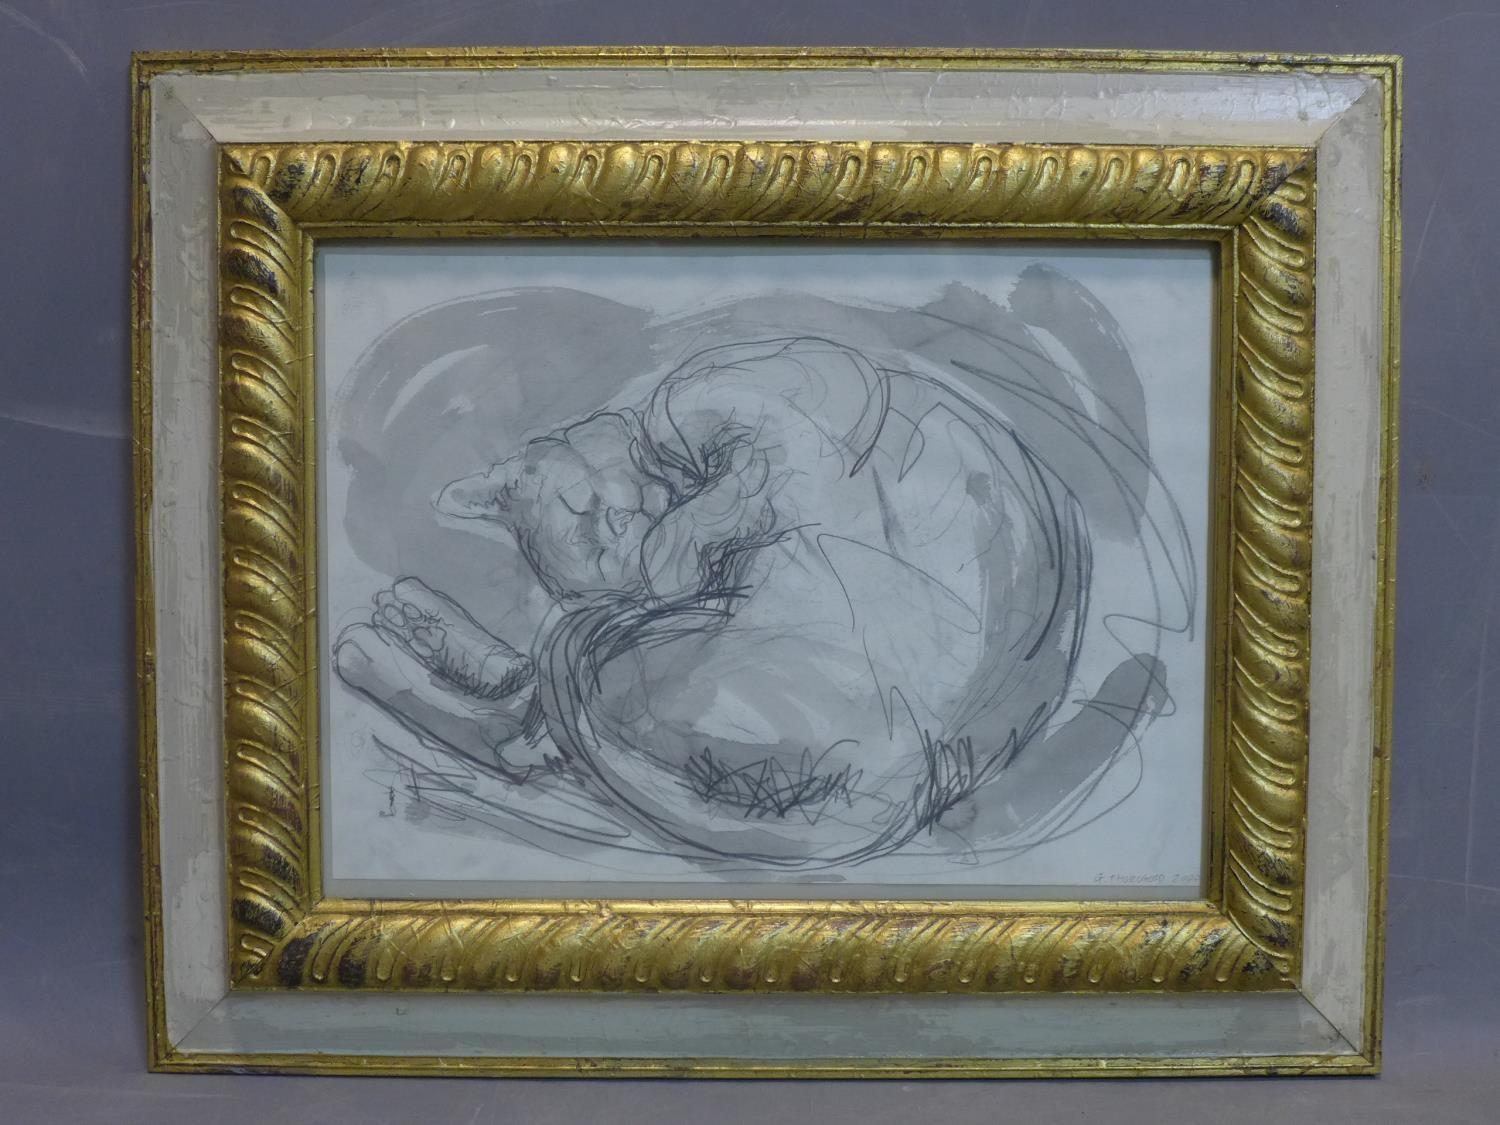 Lot 52 - Contemporary British draughtsman, sleeping cat, pencil and watercolour, signed and dated 'G.